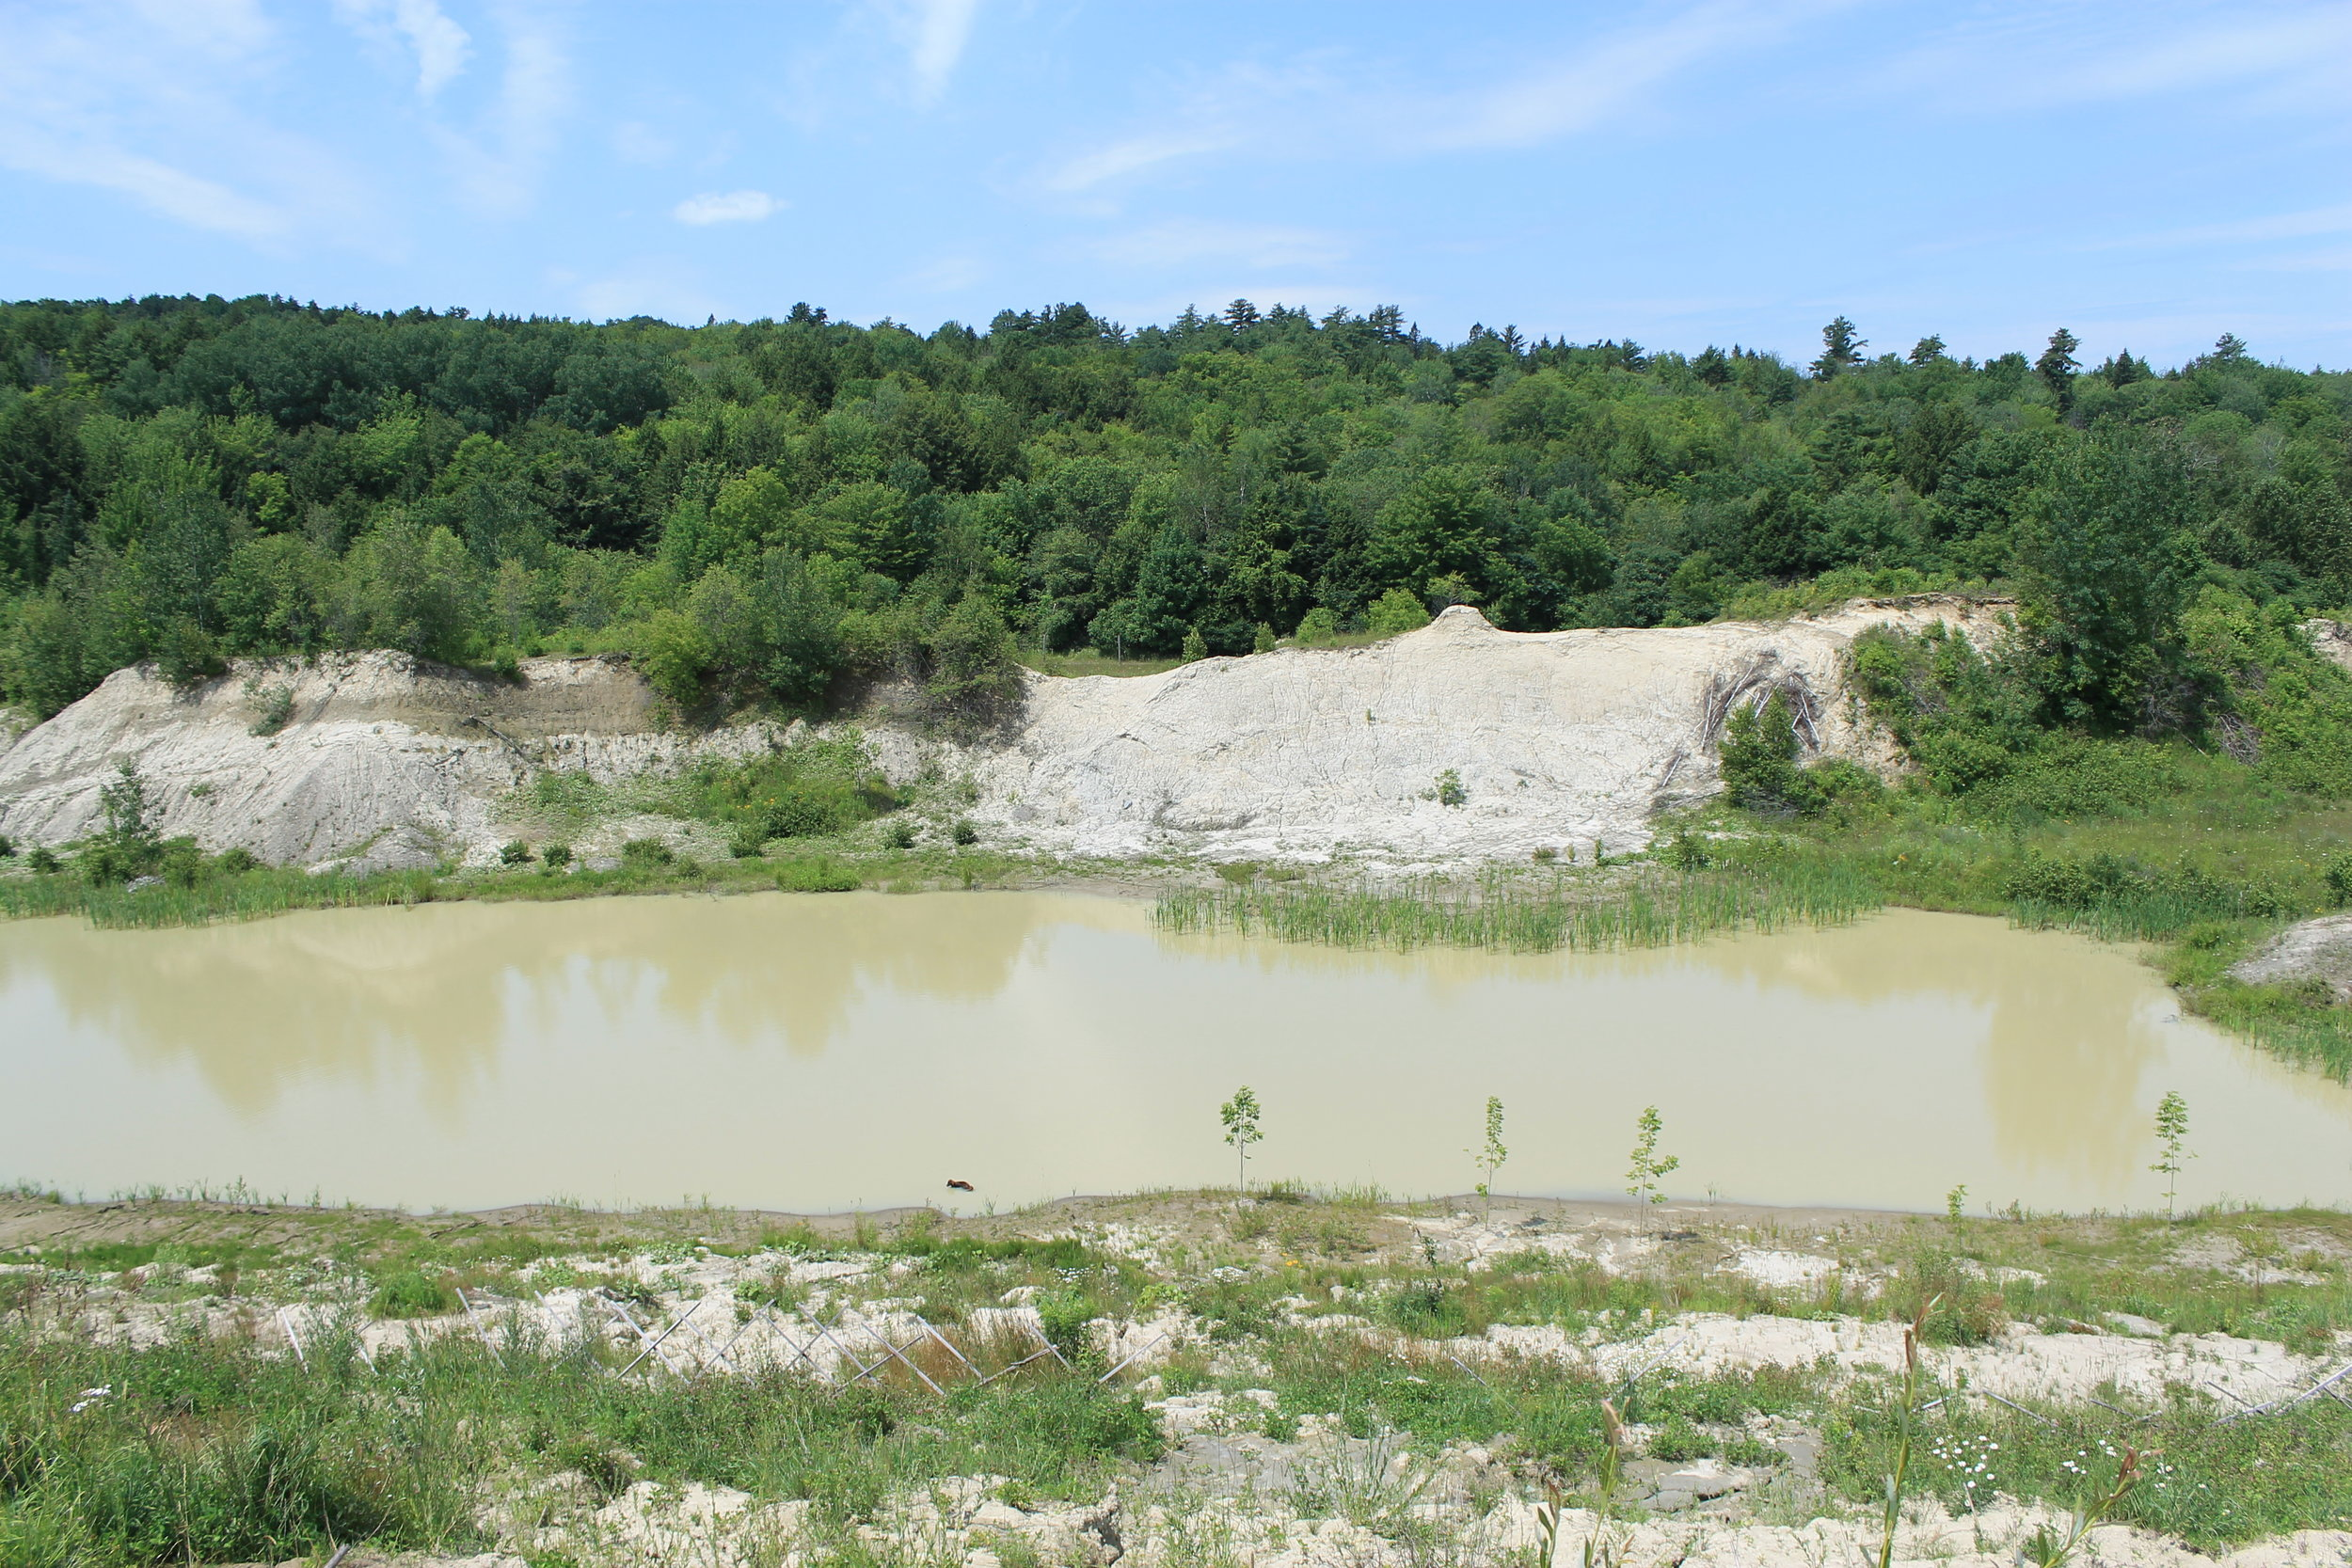 several brown ash trees were planted by the pond in April